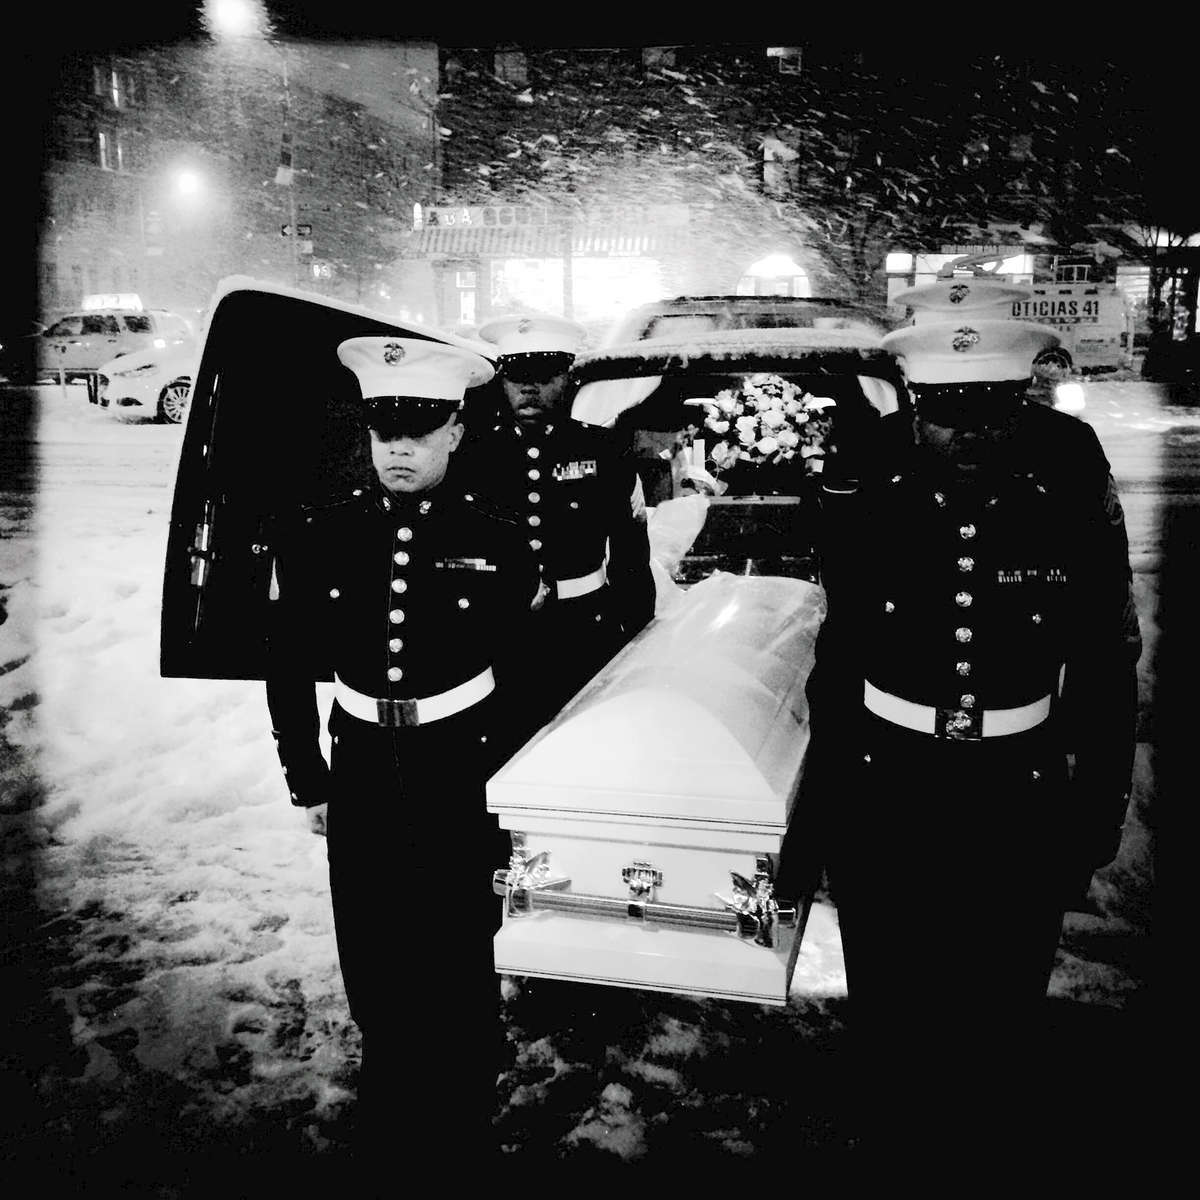 Funeral at the First Corinthian Church -- Harlem.During a heavy snow storm, members of the Harlem Youth Marines carry  out Myls Dobson's coffin from a car during the 4-year-old's funeral at the First Corinthian Church.